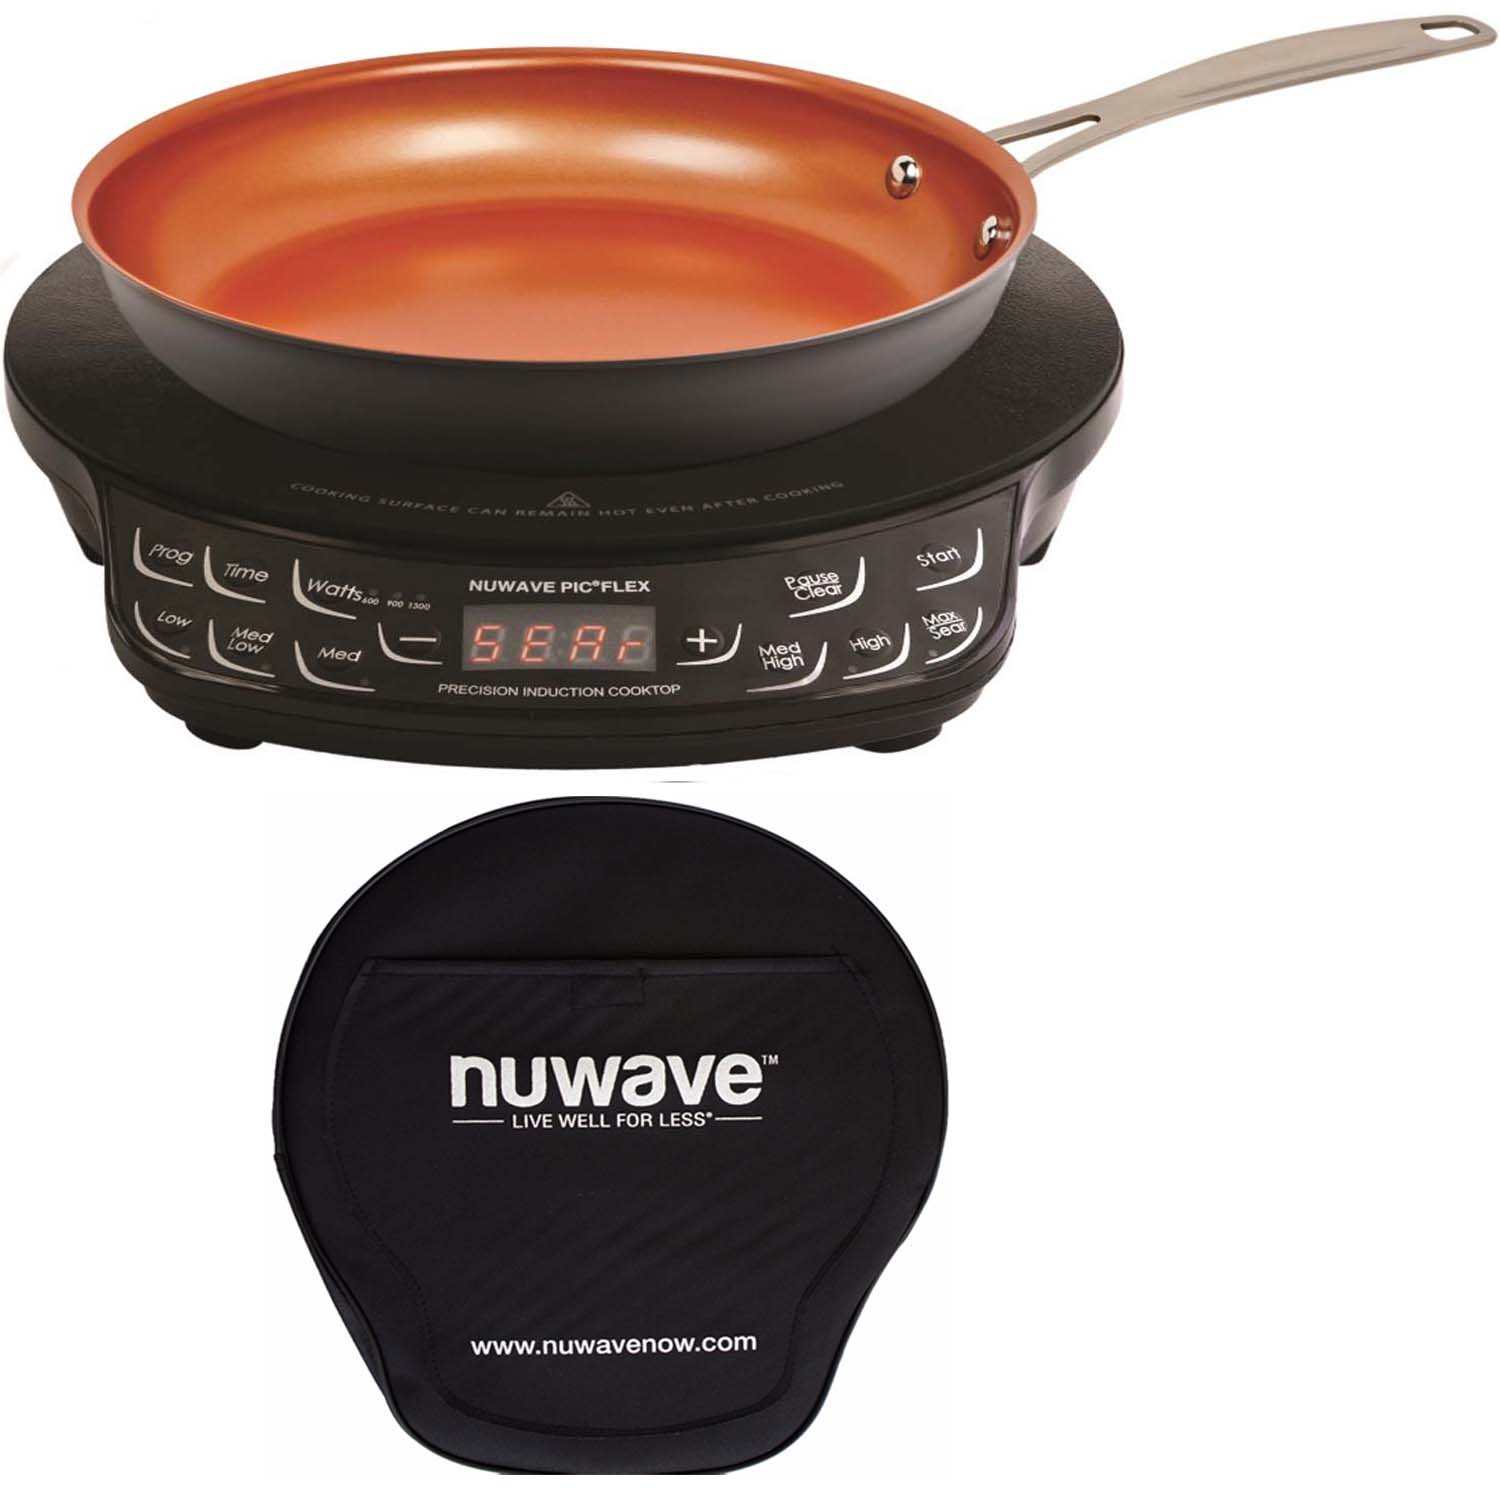 Nu-Wave PIC Compact Precision Induction Cooktop w/ 9-inch...